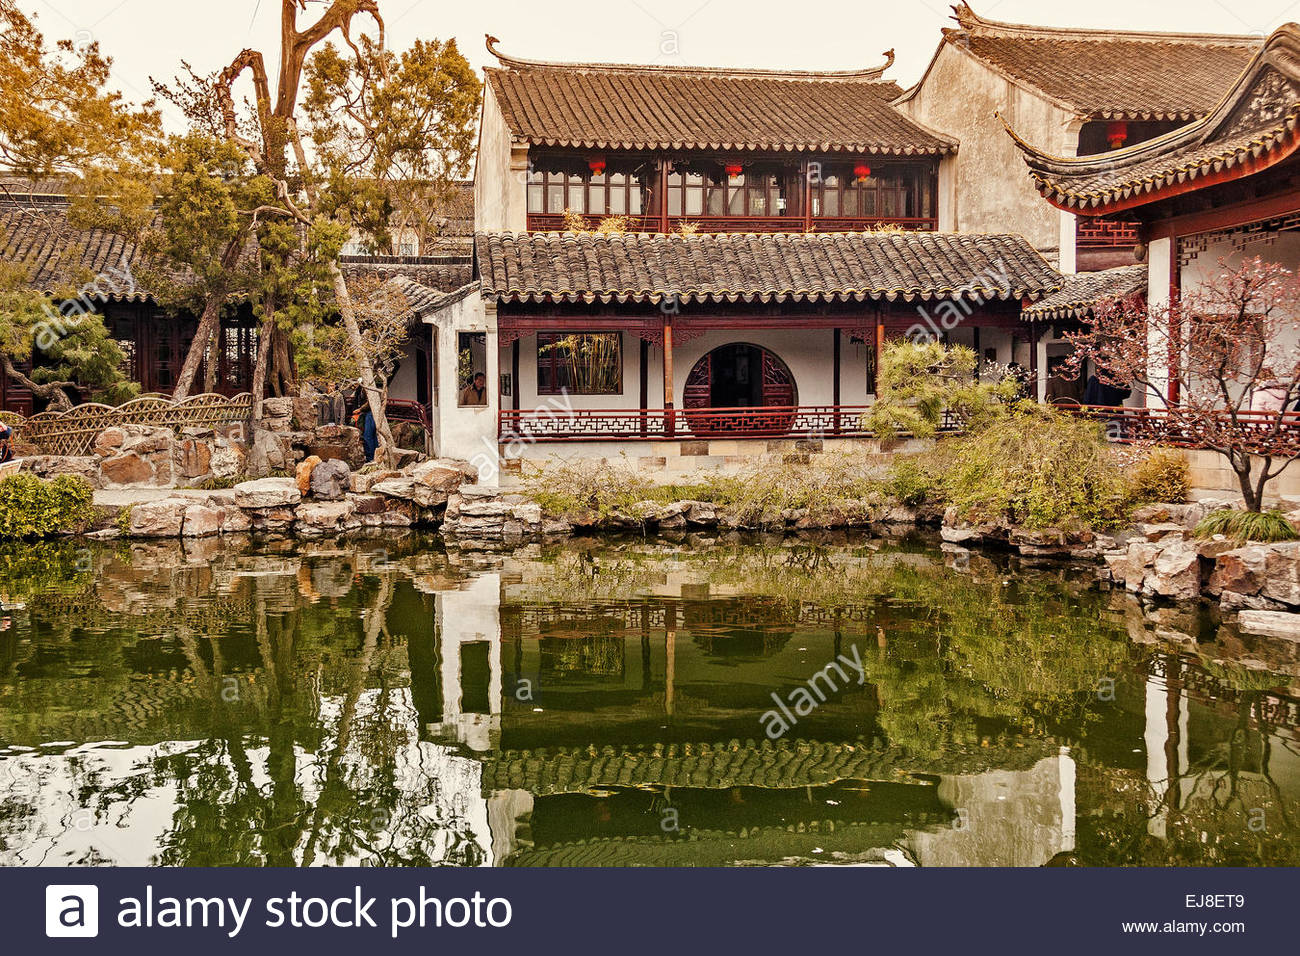 Garden Master Of The Nets Shanghai China Stock Photo: 80092553 - Alamy